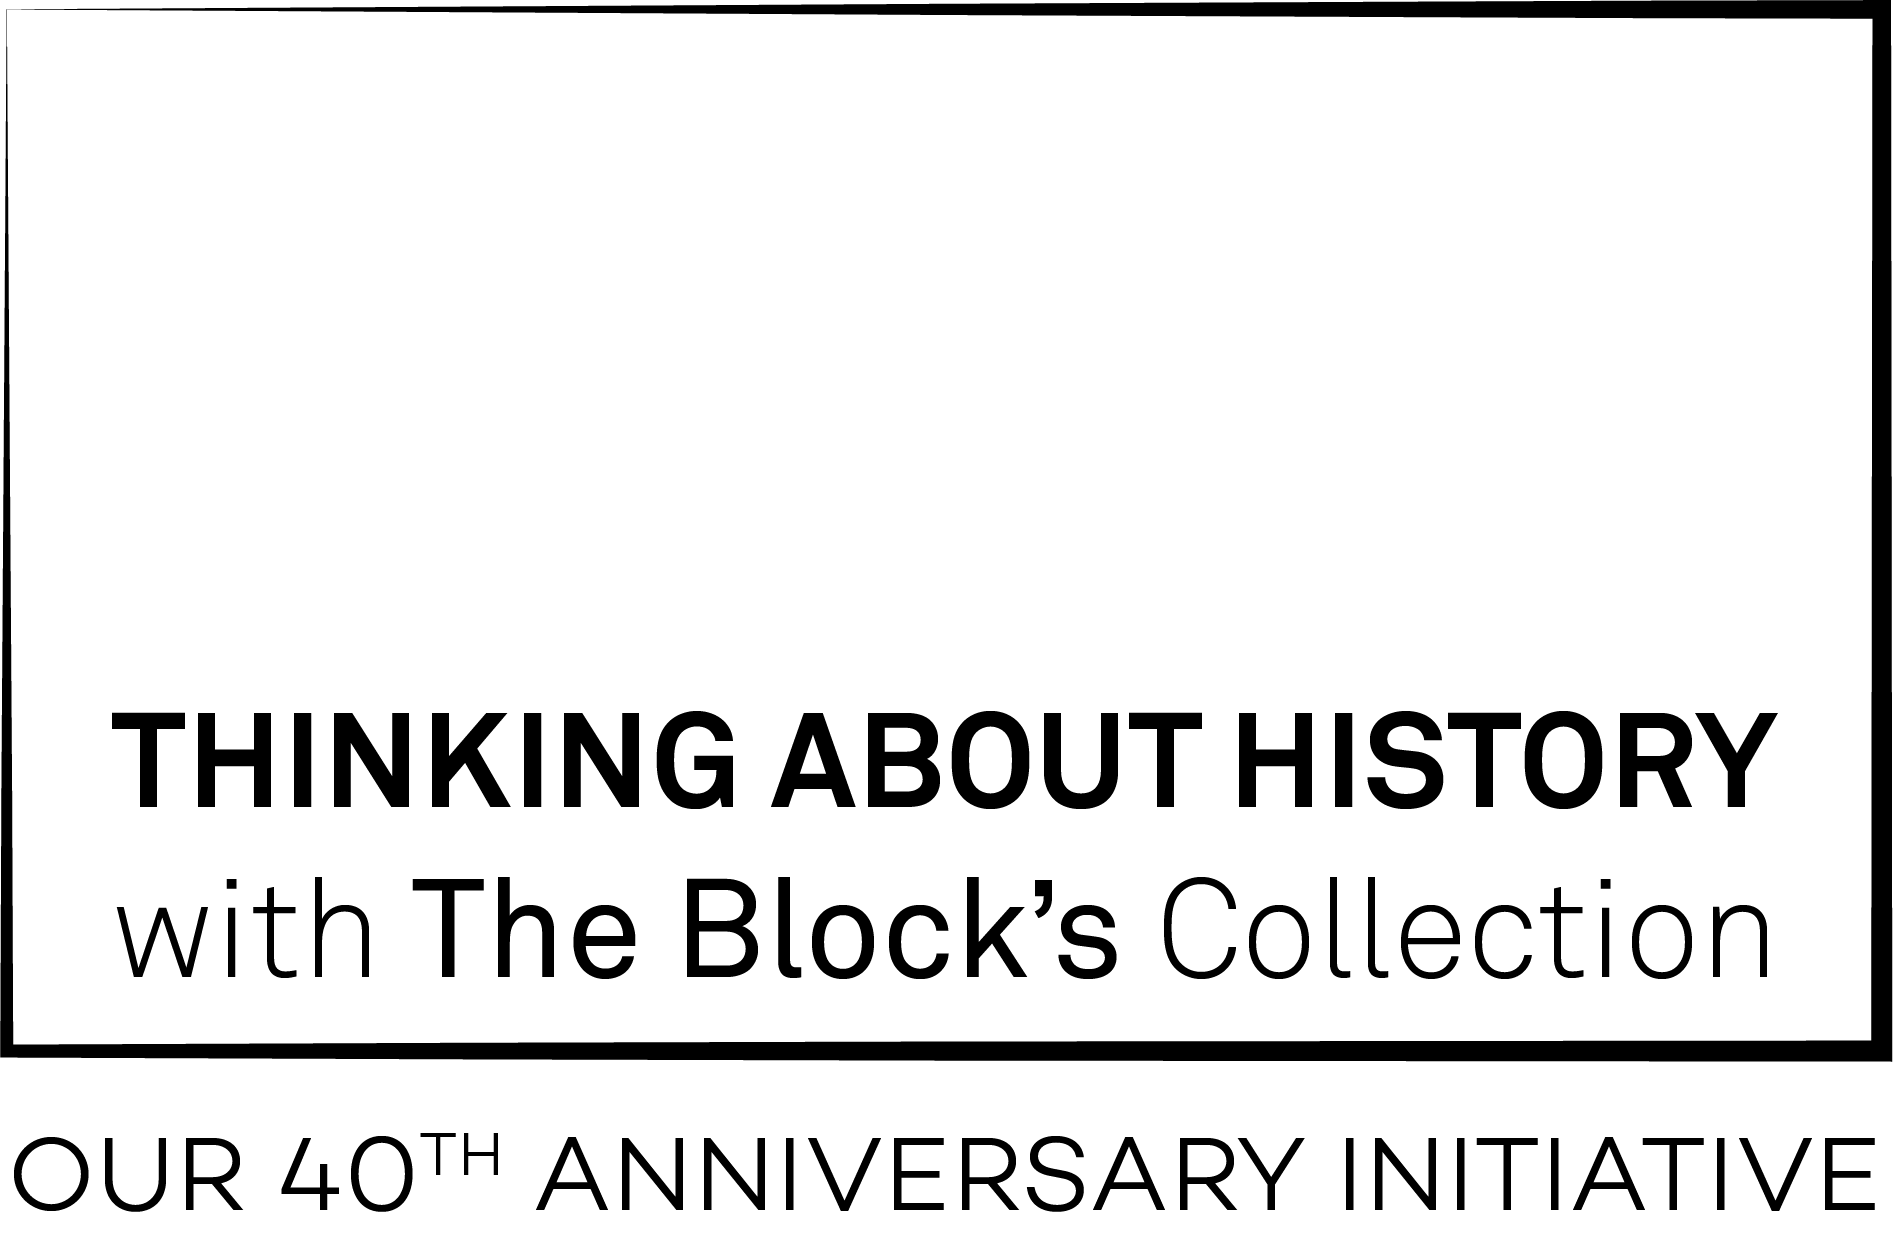 thinking-about-history-black-logo.png